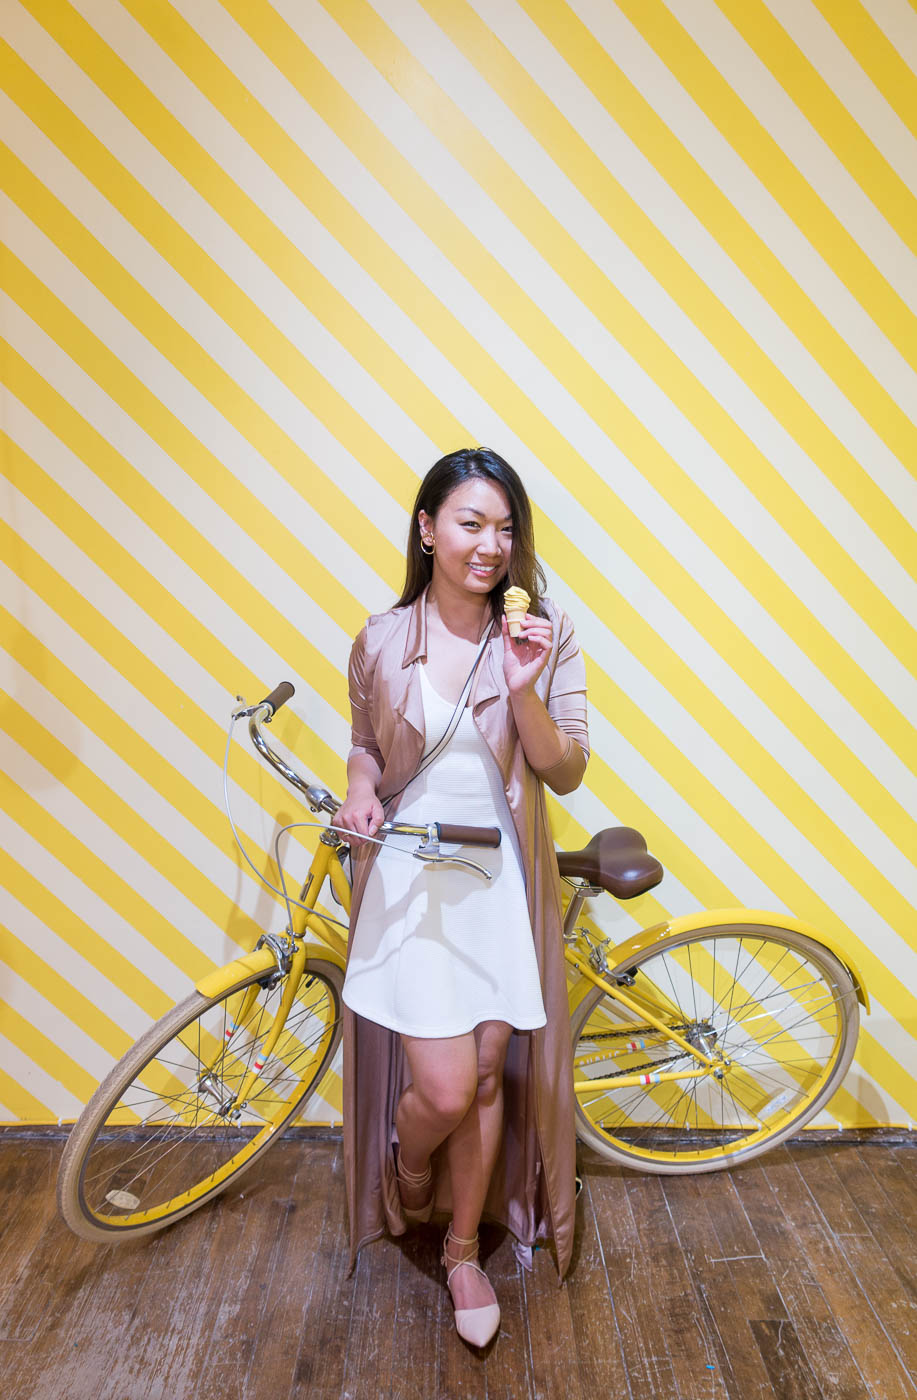 Color Factory San Francisco - Yellow Room | The Chic Diary